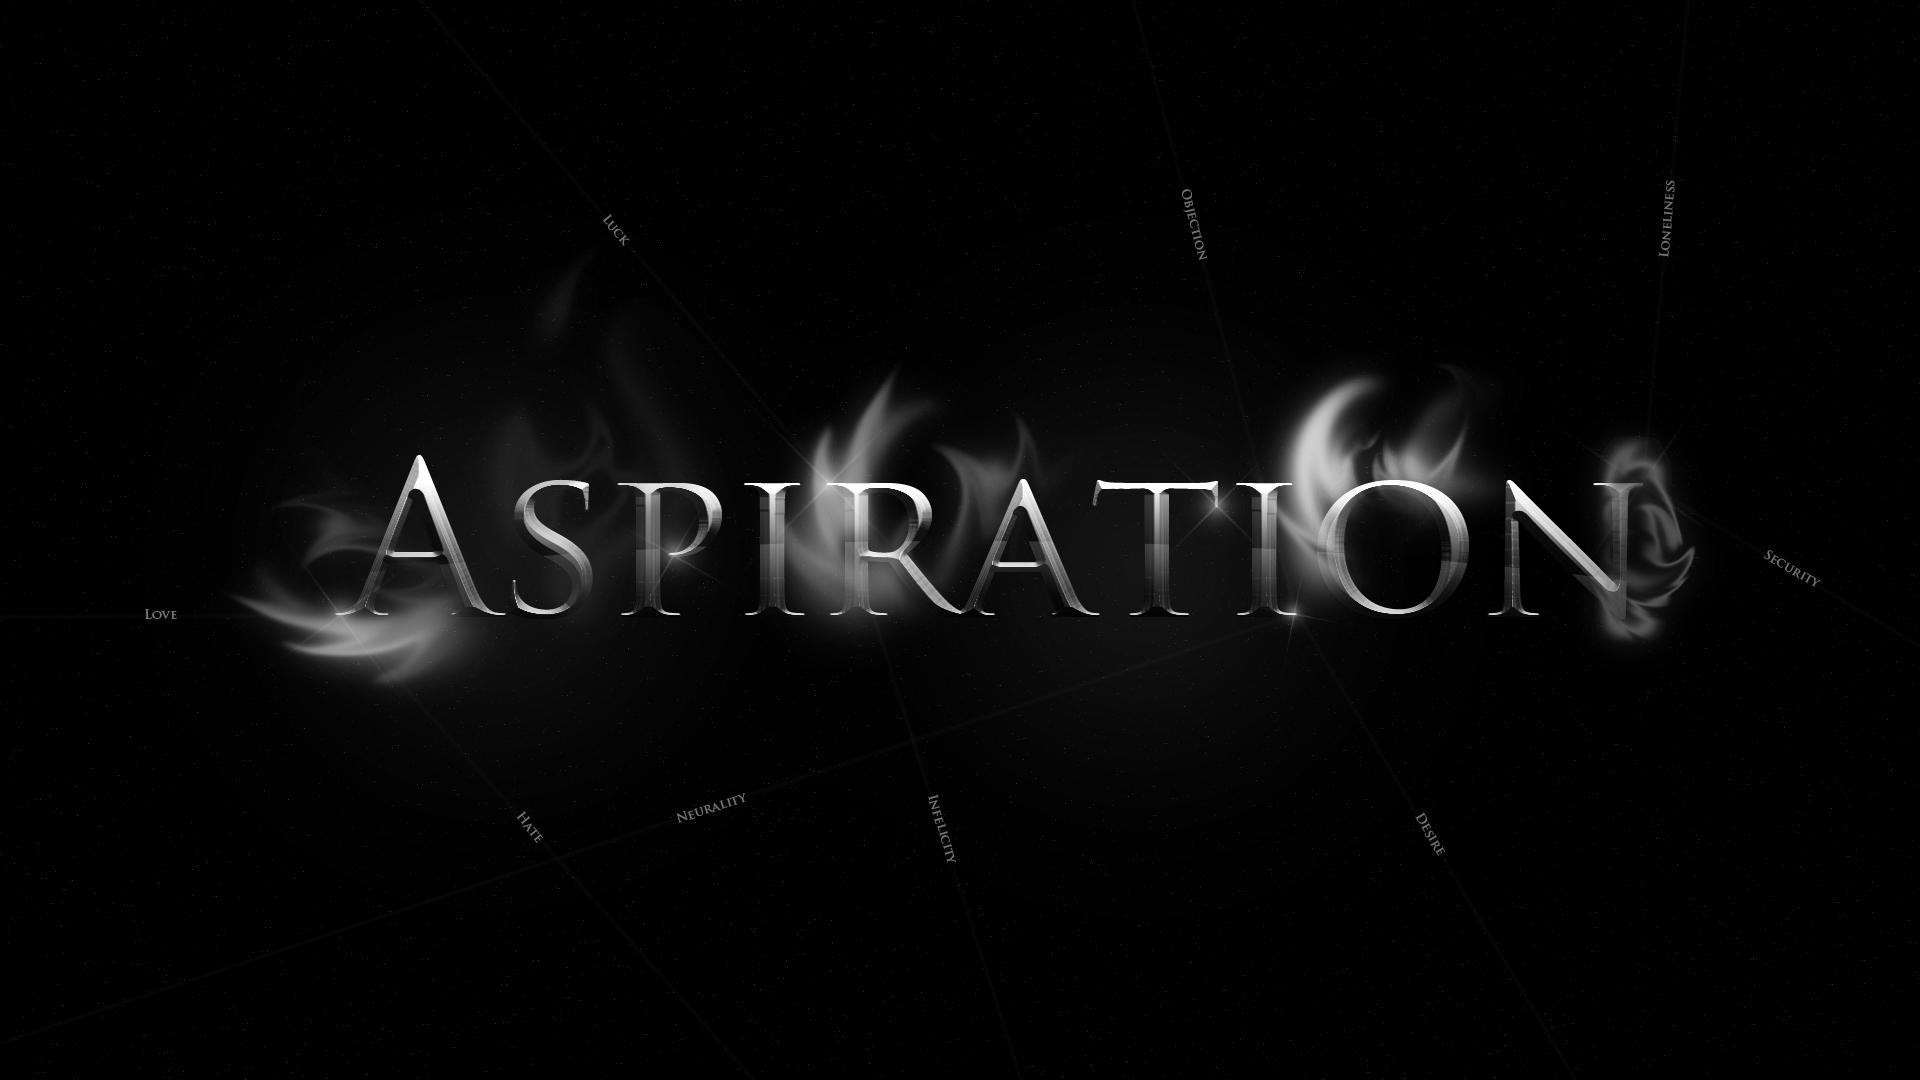 Burning Aspiration by KillingTheEngine